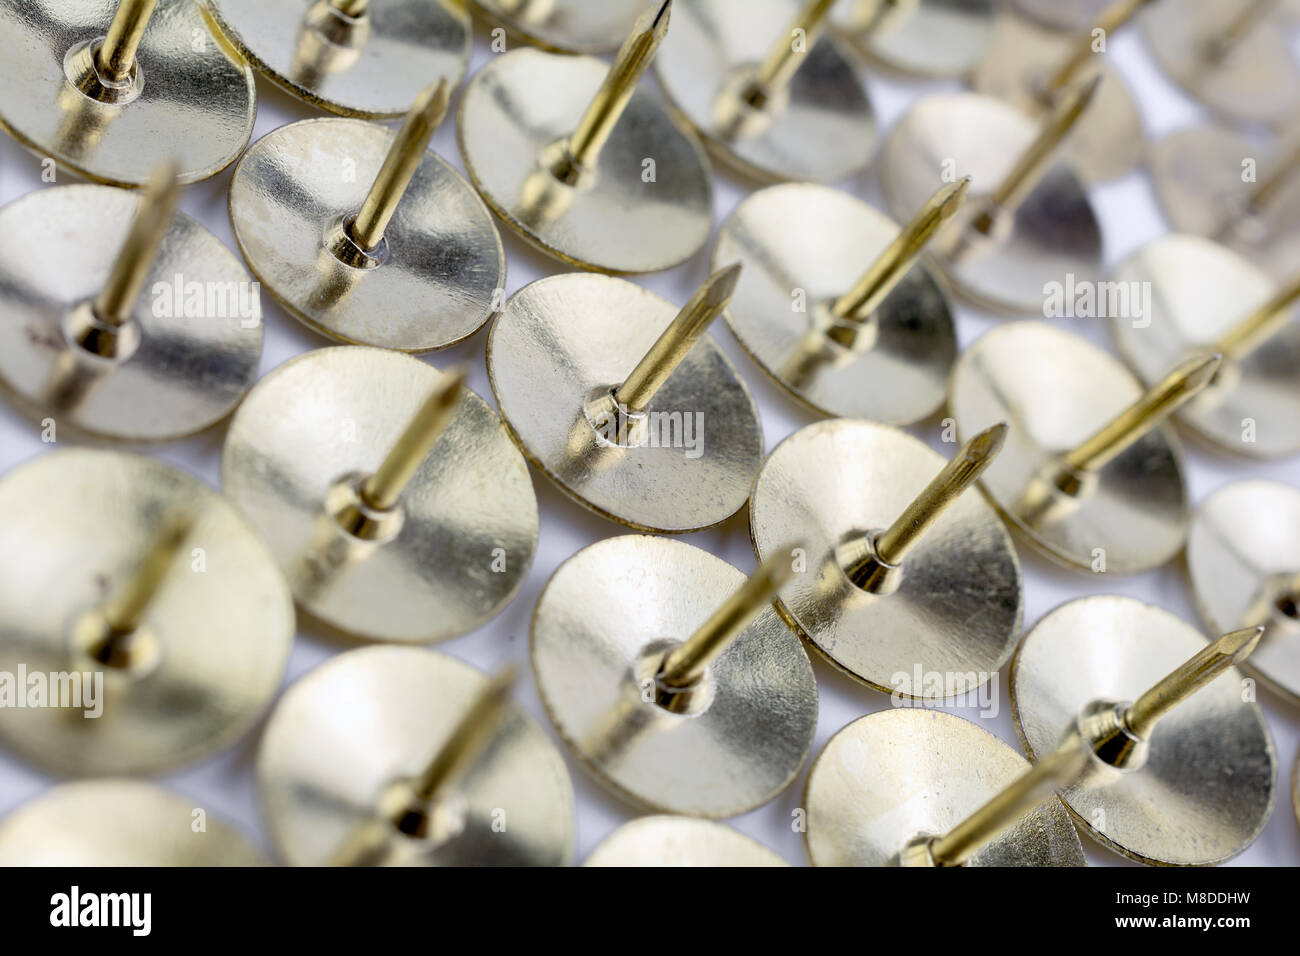 A Wall of Thumbtacks In A White Box - Crooked Angle  #2 - Stock Image